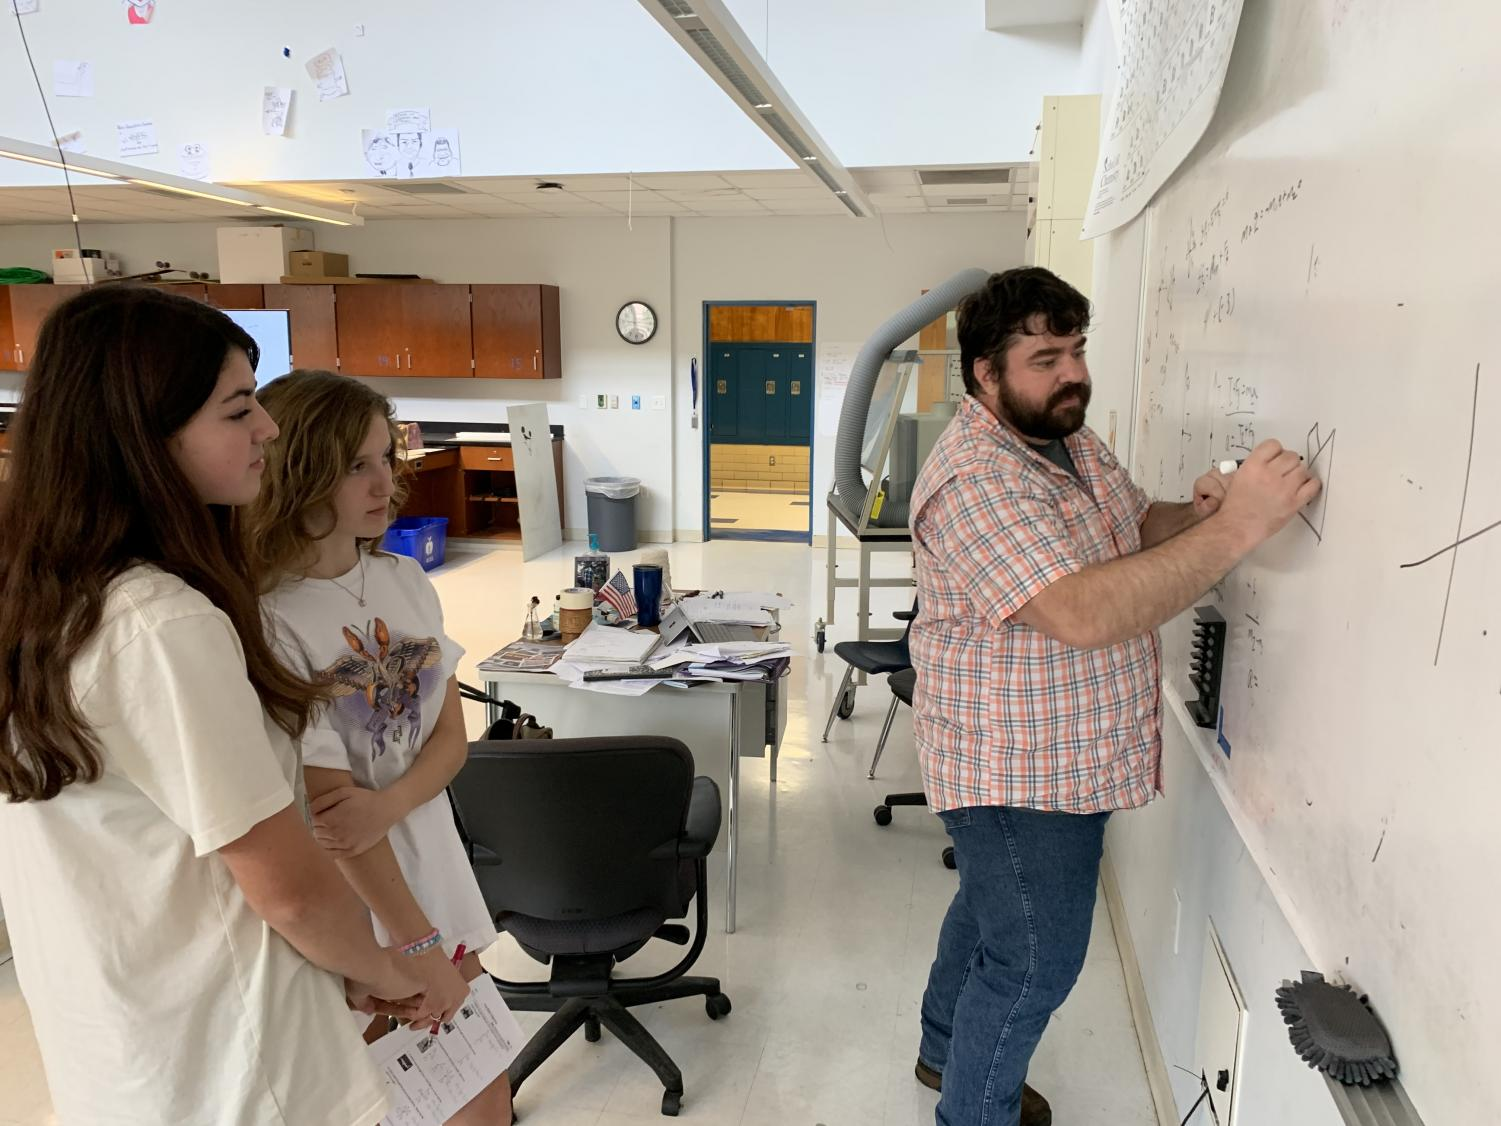 Black and White: Physics teacher Nicholas Koslan draws a free body diagram for juniors Lily Prather and Lily Wilson on his class whiteboard. Koslan, a Physics I and II teacher, previously worked with researchers studying the affects of certain chemicals on brain tumors. Photos by Tomas Marrero